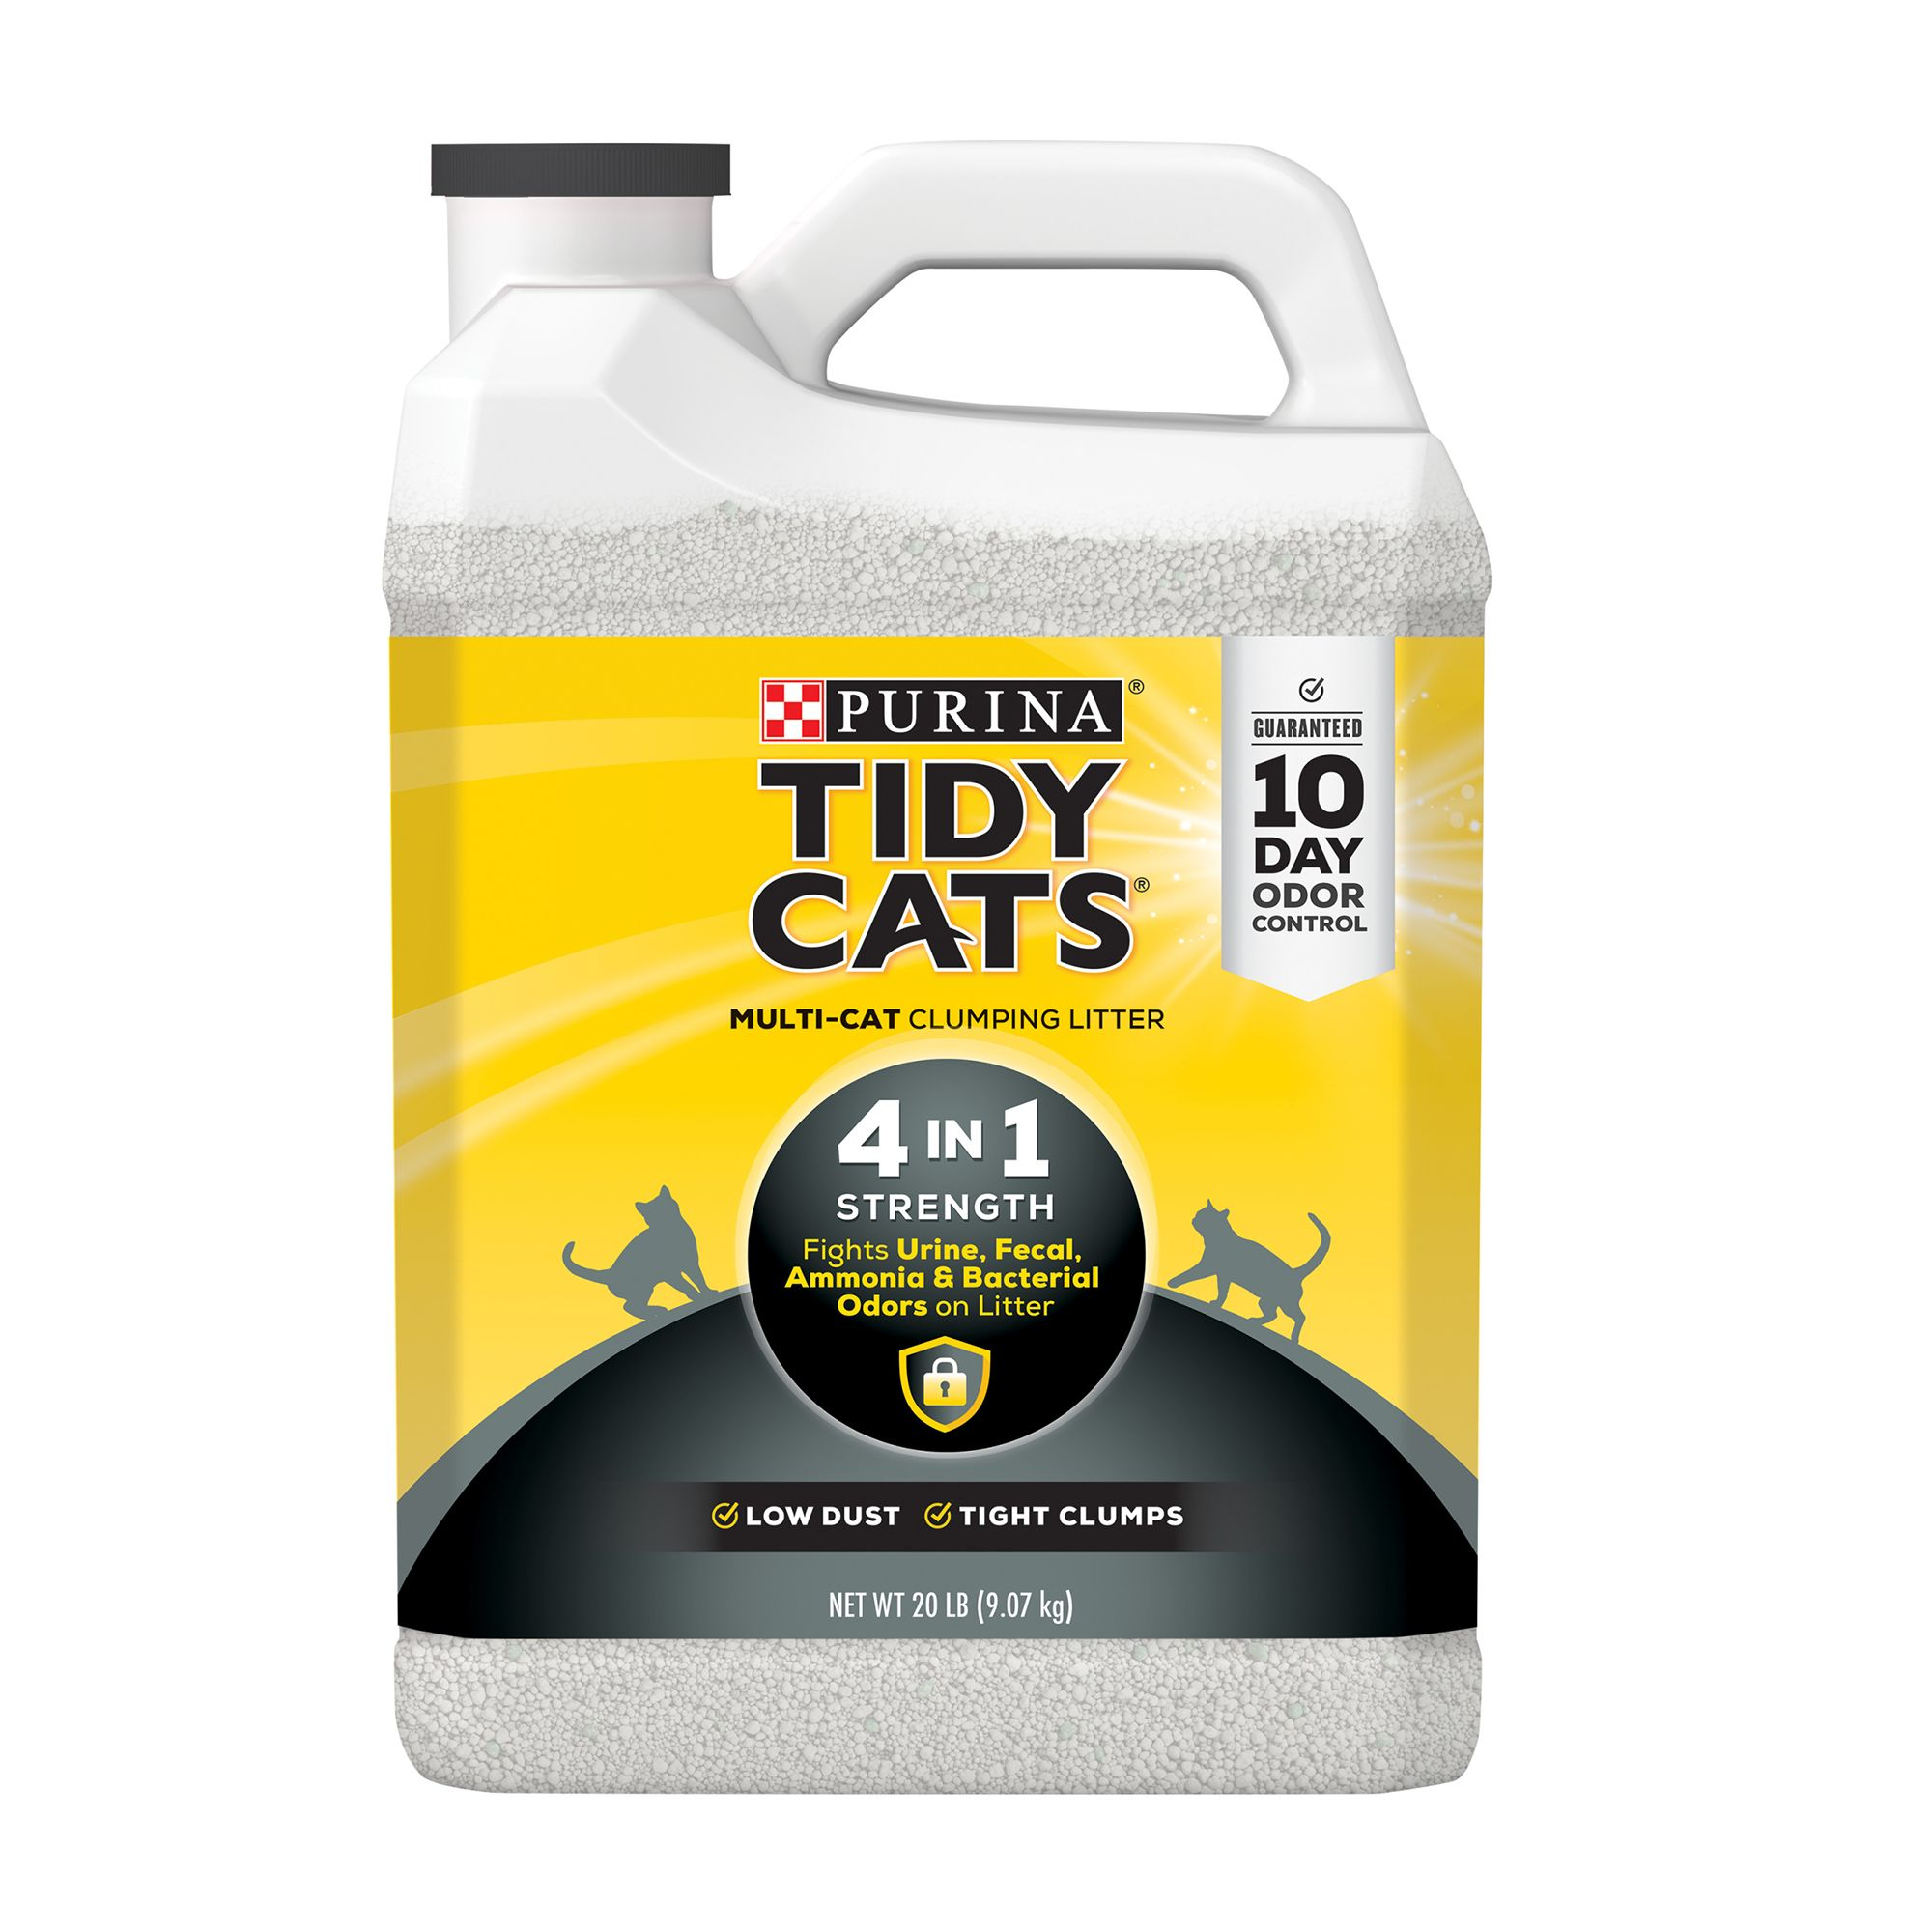 Purina Tidy Cats 4 In 1 Strength Cat Litter Clumping Multi Cat Size 20 Lb